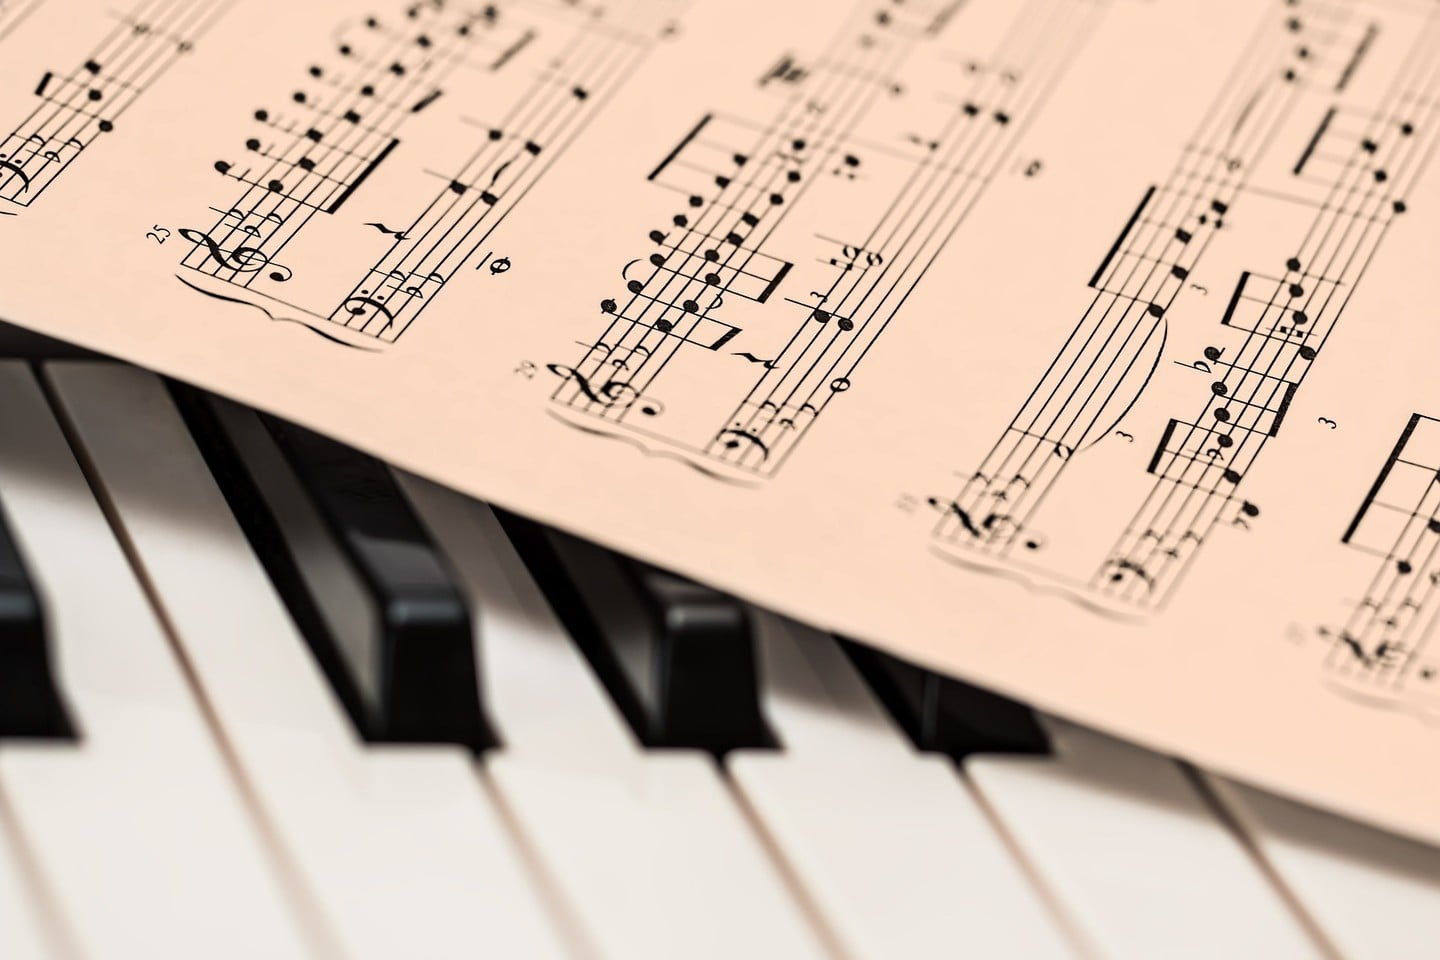 Flat Provides an Excellent Tool for Composing and Sharing Music